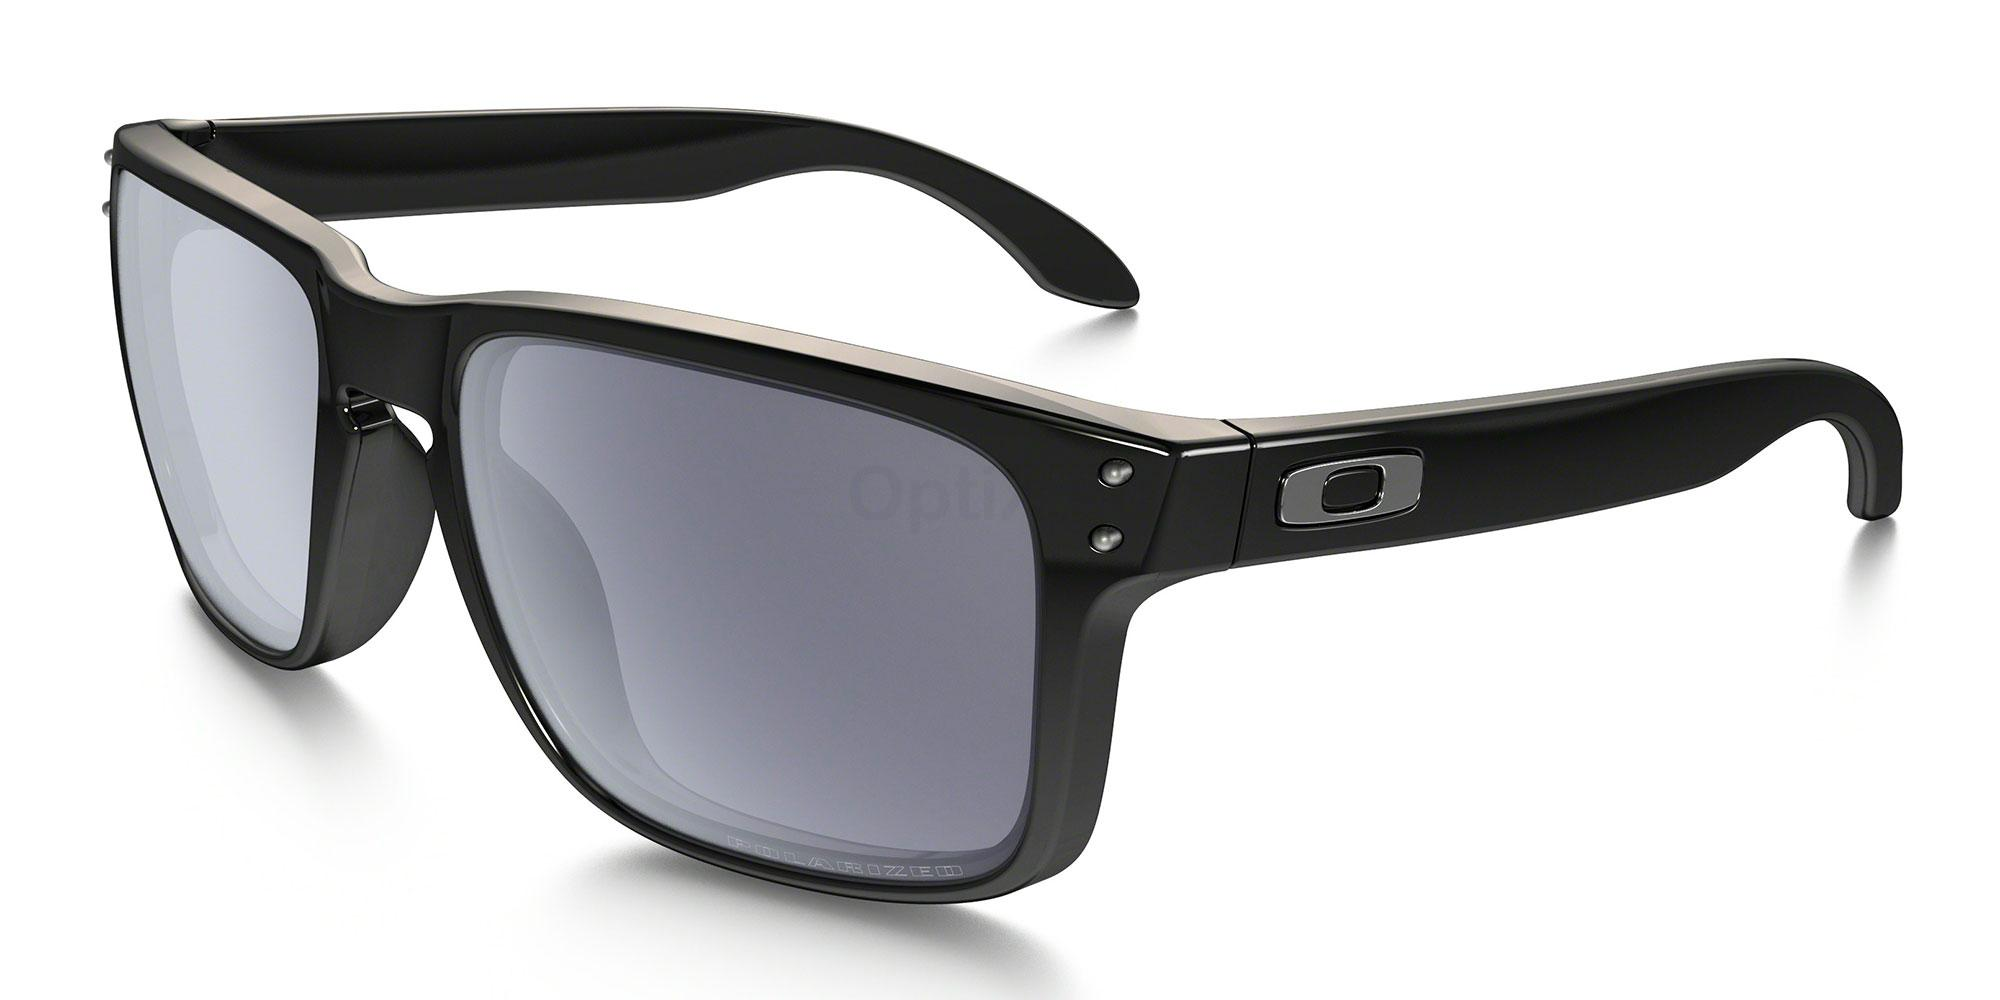 910202 OO9102 HOLBROOK (Polarized) Sunglasses, Oakley